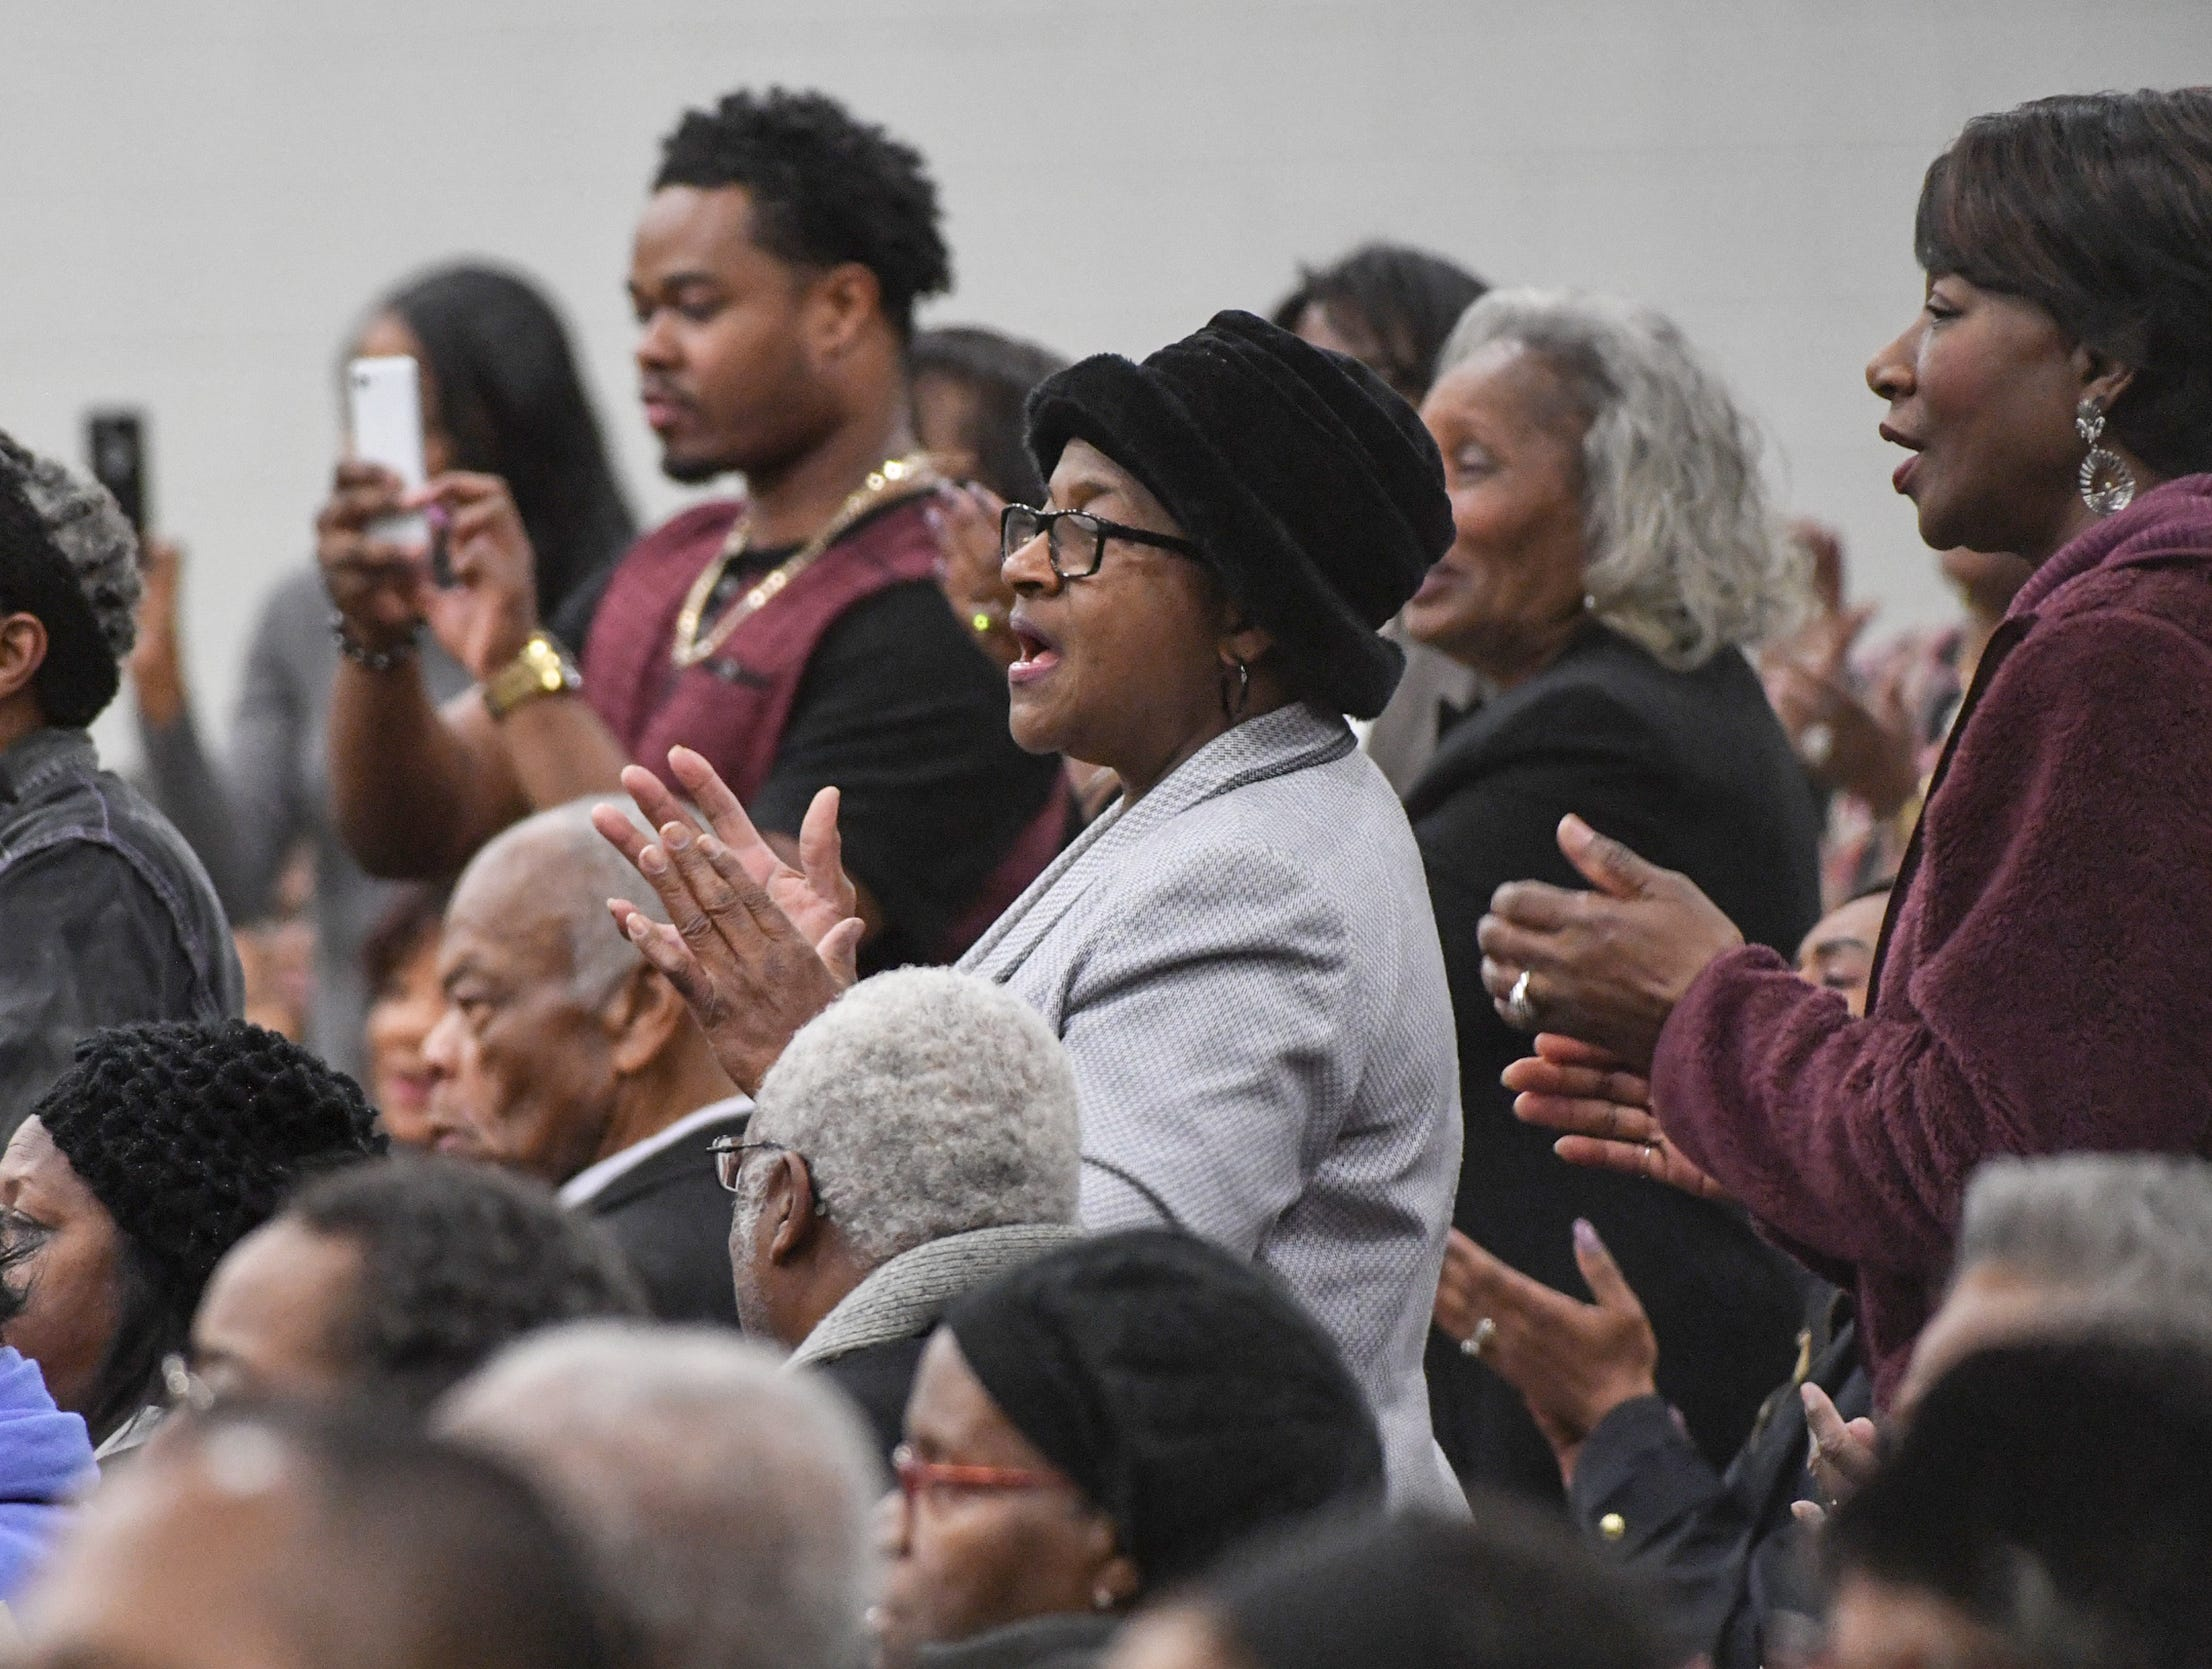 The audience claps as the Anderson University West African Ensemble perform during the Anderson County Martin Luther King, Jr. Celebration in Anderson January 21, 2019. This yearÕs keynote speaker is Cyrus Birch, Charleston native and community activist, who works as a model and stunt performer, seen as a Jabari warrior in the megahit ÒBlack Panther.Ó